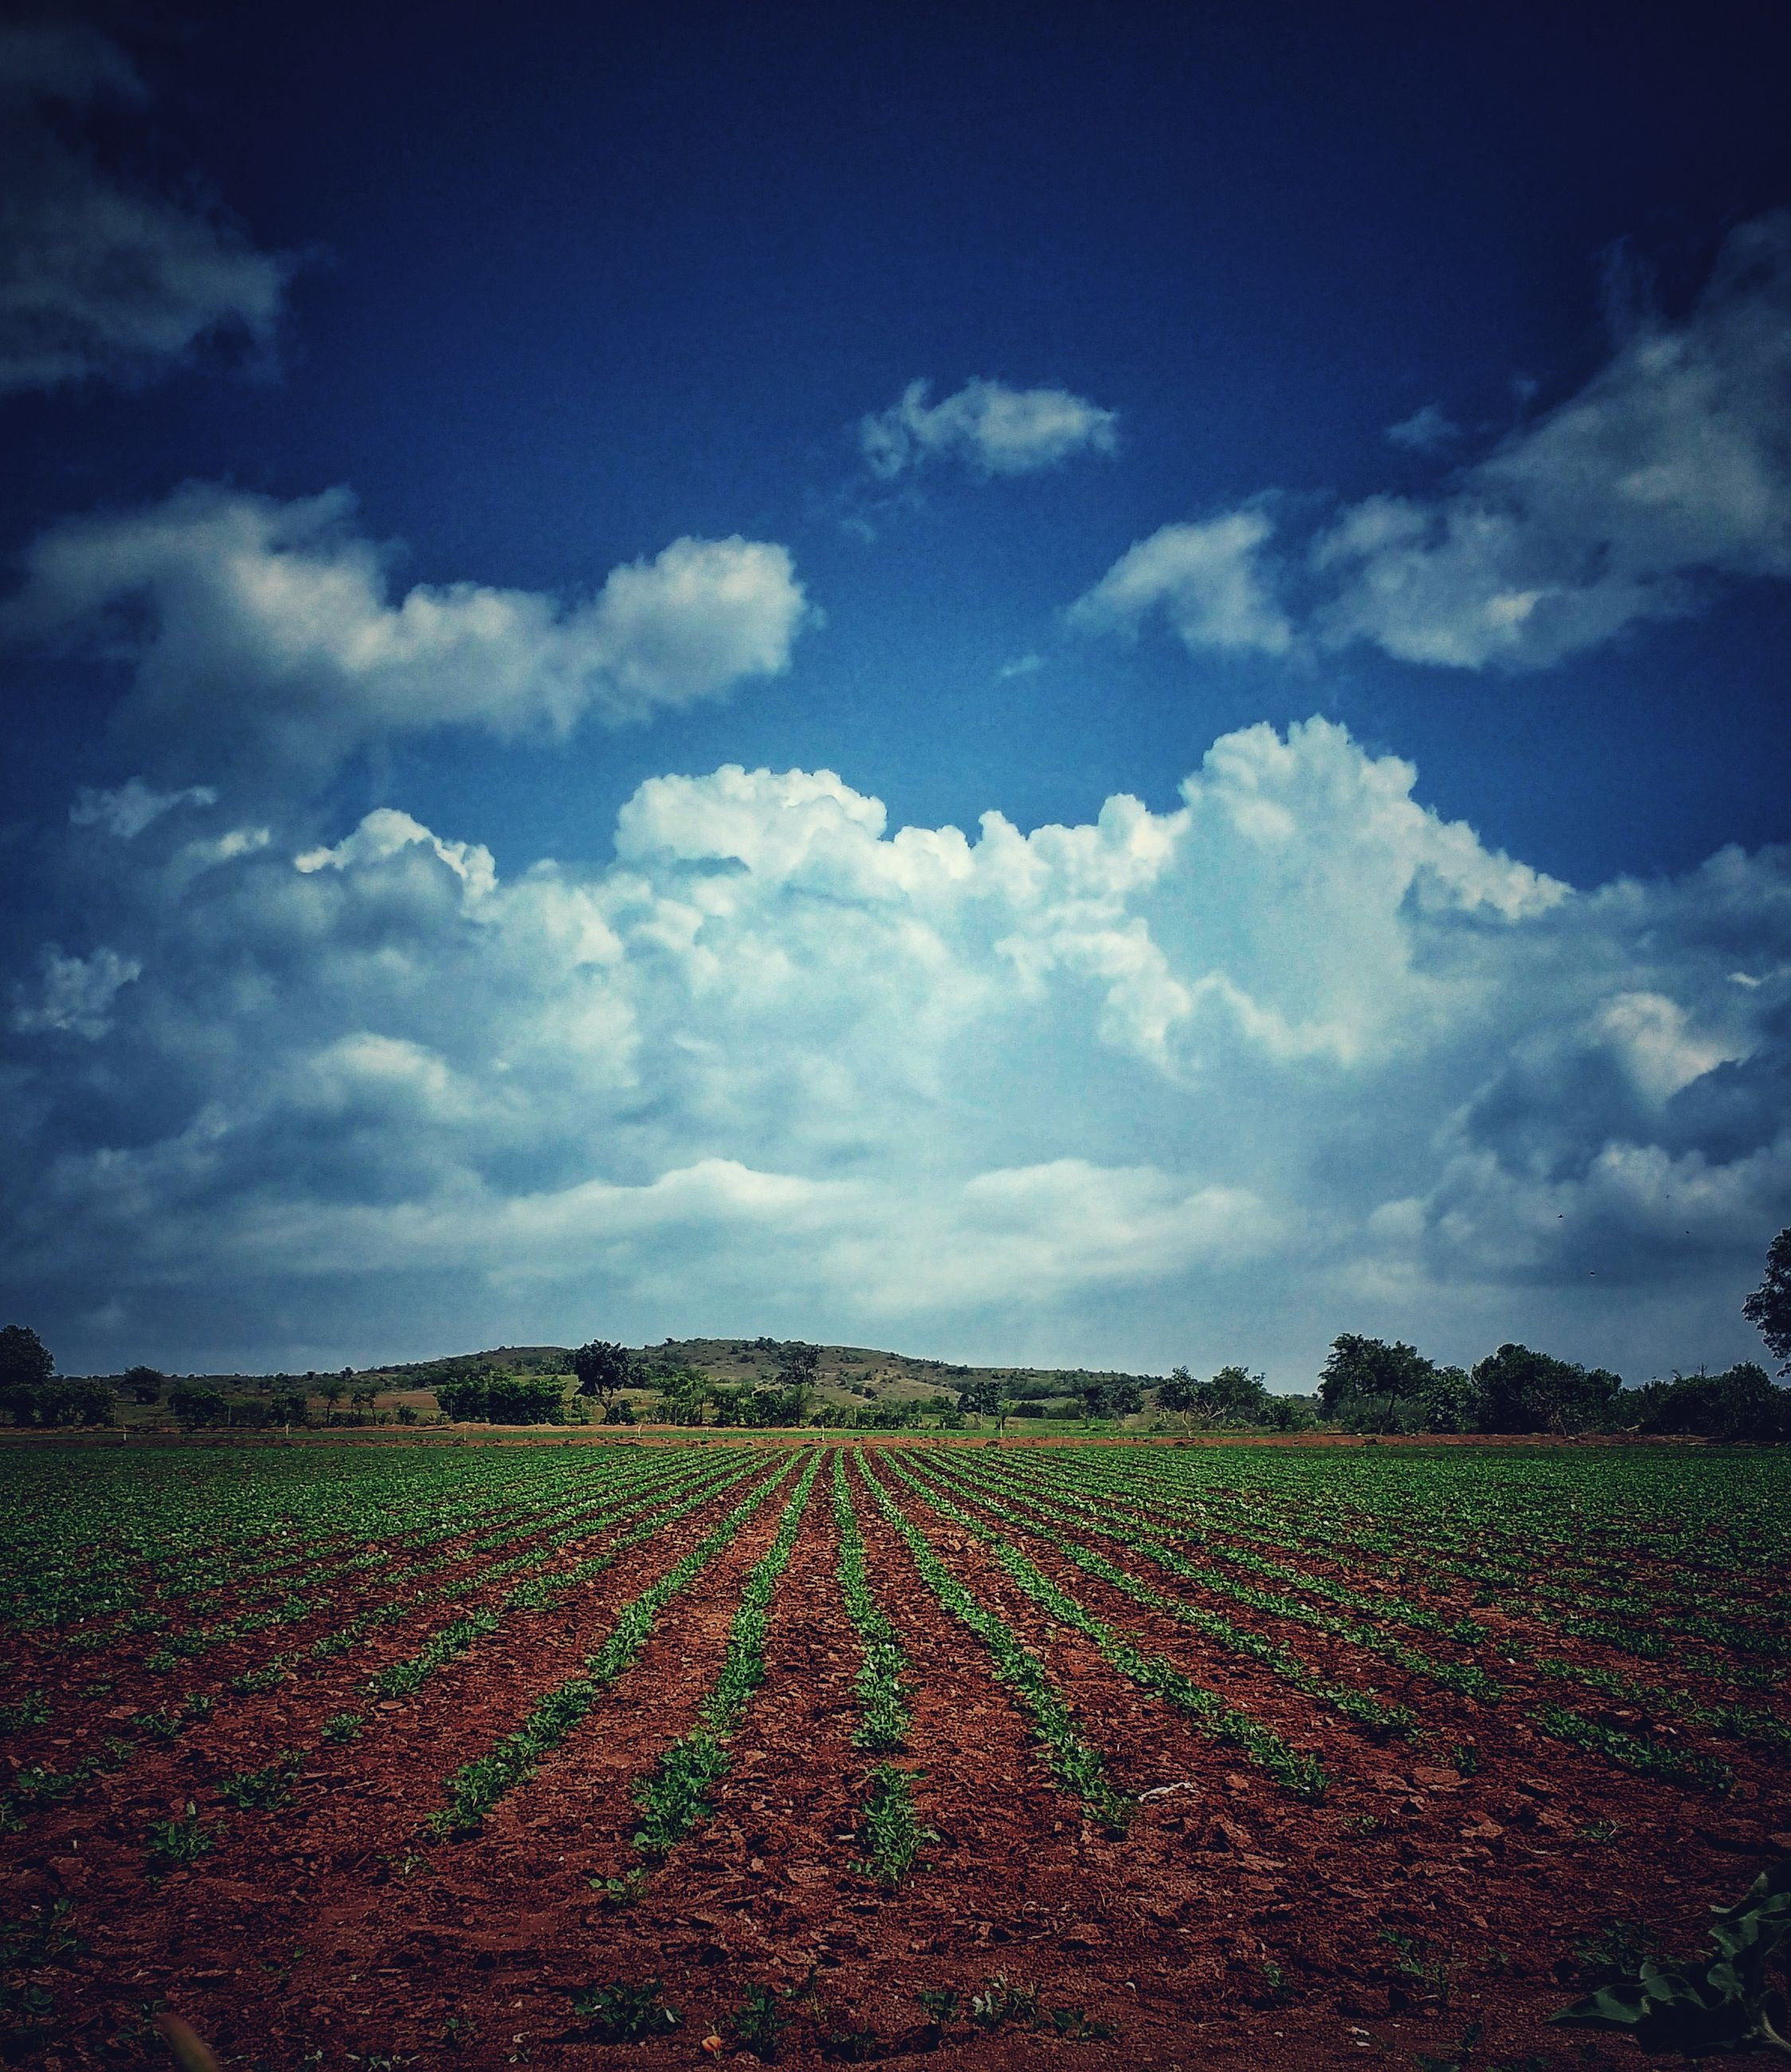 field, agriculture, landscape, cloud - sky, growth, sky, rural scene, nature, beauty in nature, tranquility, day, no people, plough, scenics, outdoors, plowed field